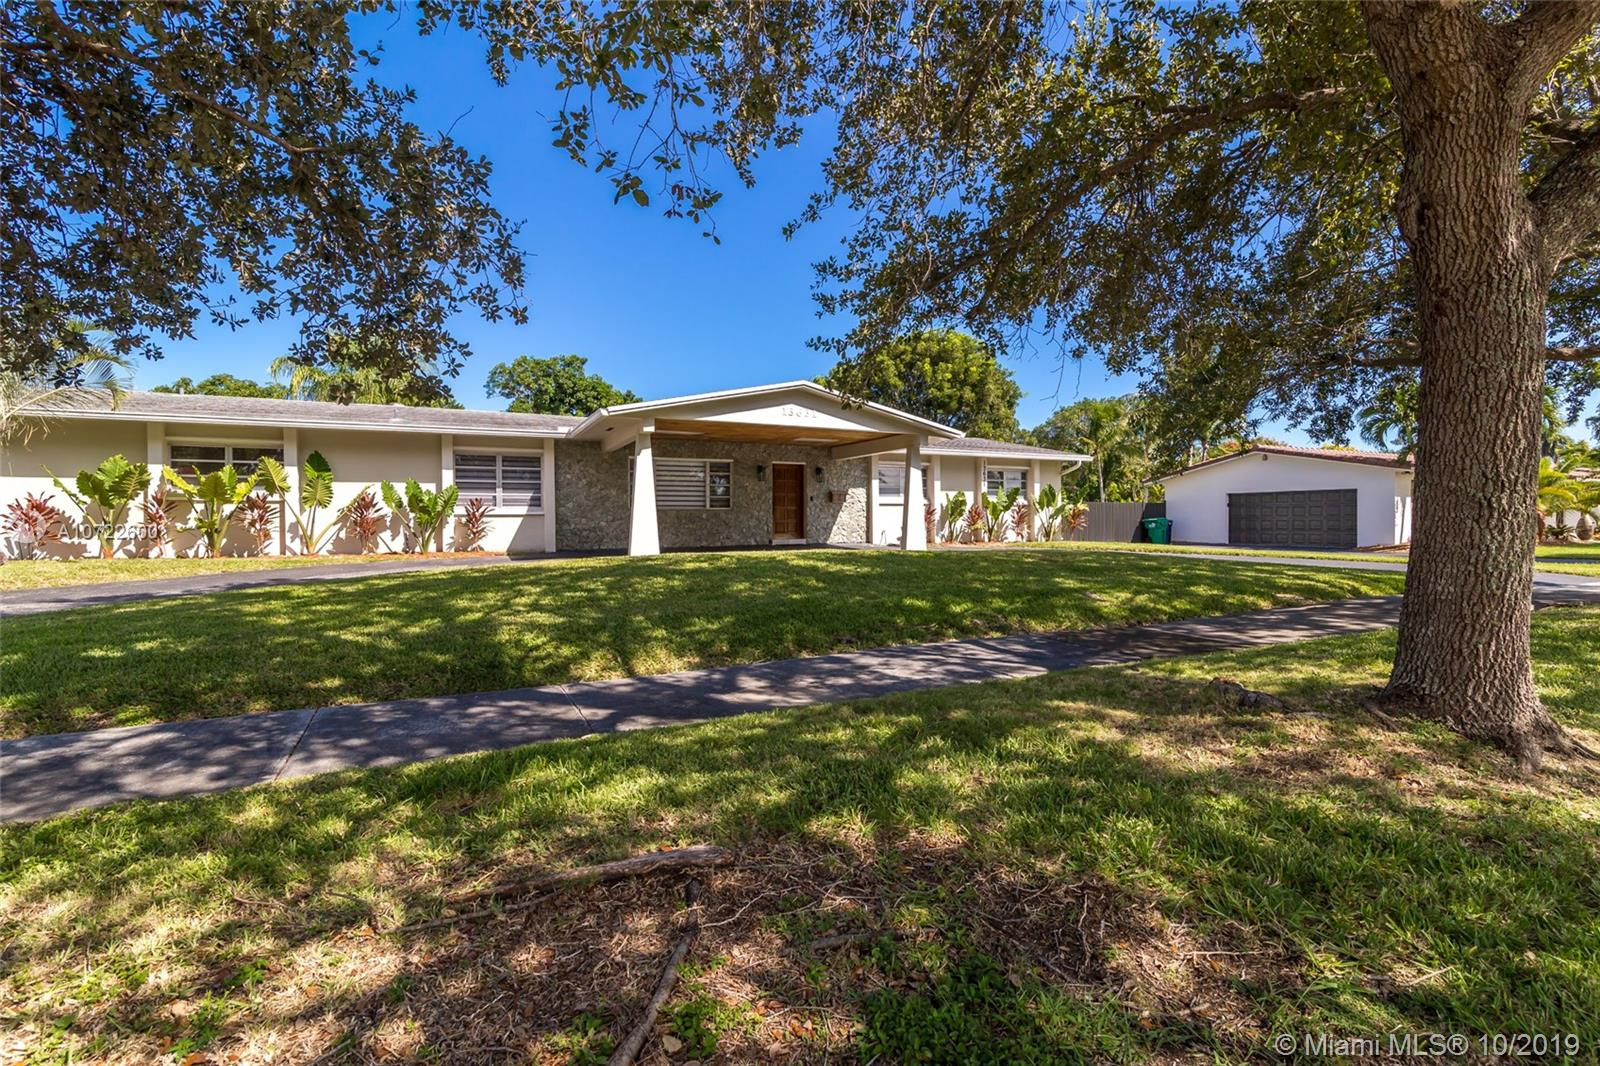 13631 SW 102nd Ave, Kendall in Miami-dade County County, FL 33176 Home for Sale